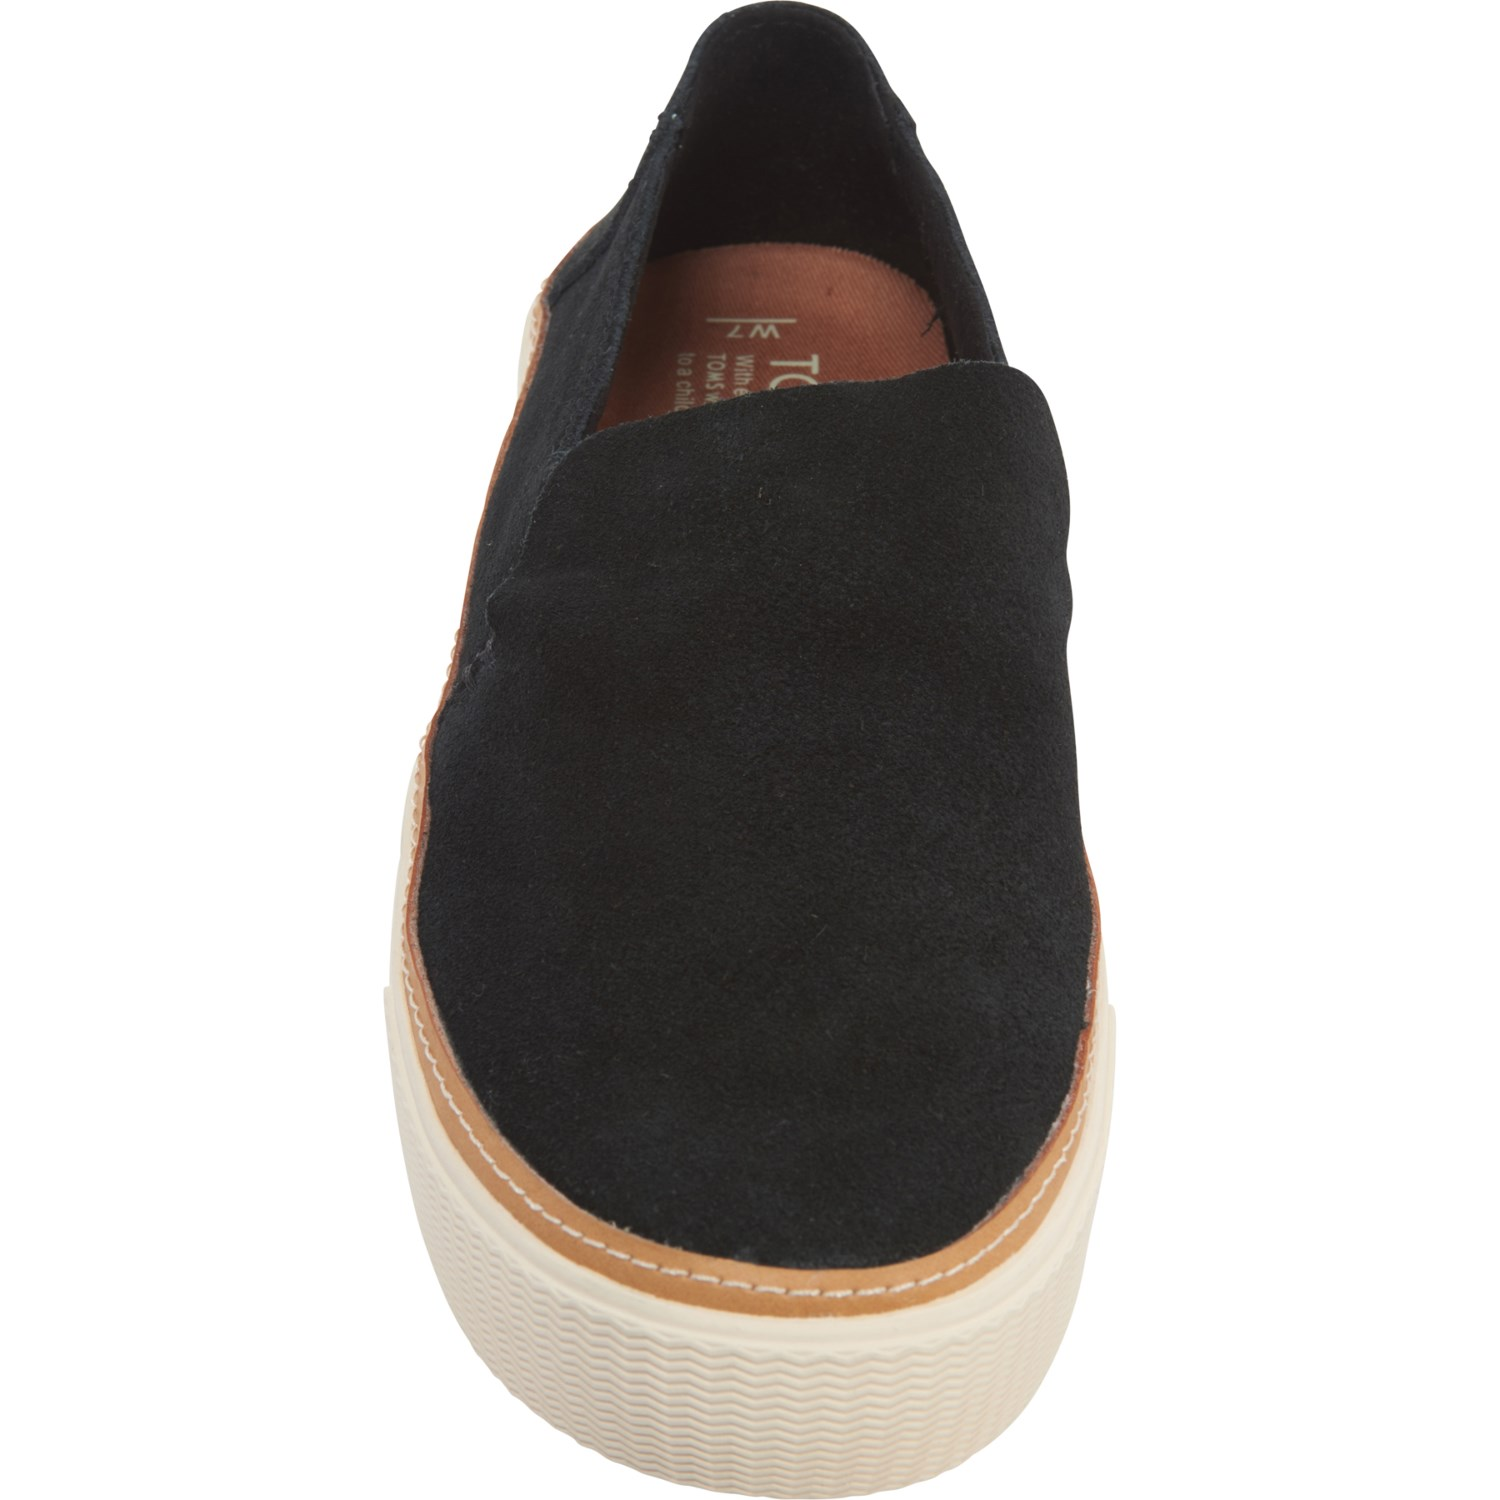 TOMS Black Sunset Sneakers (For Women)